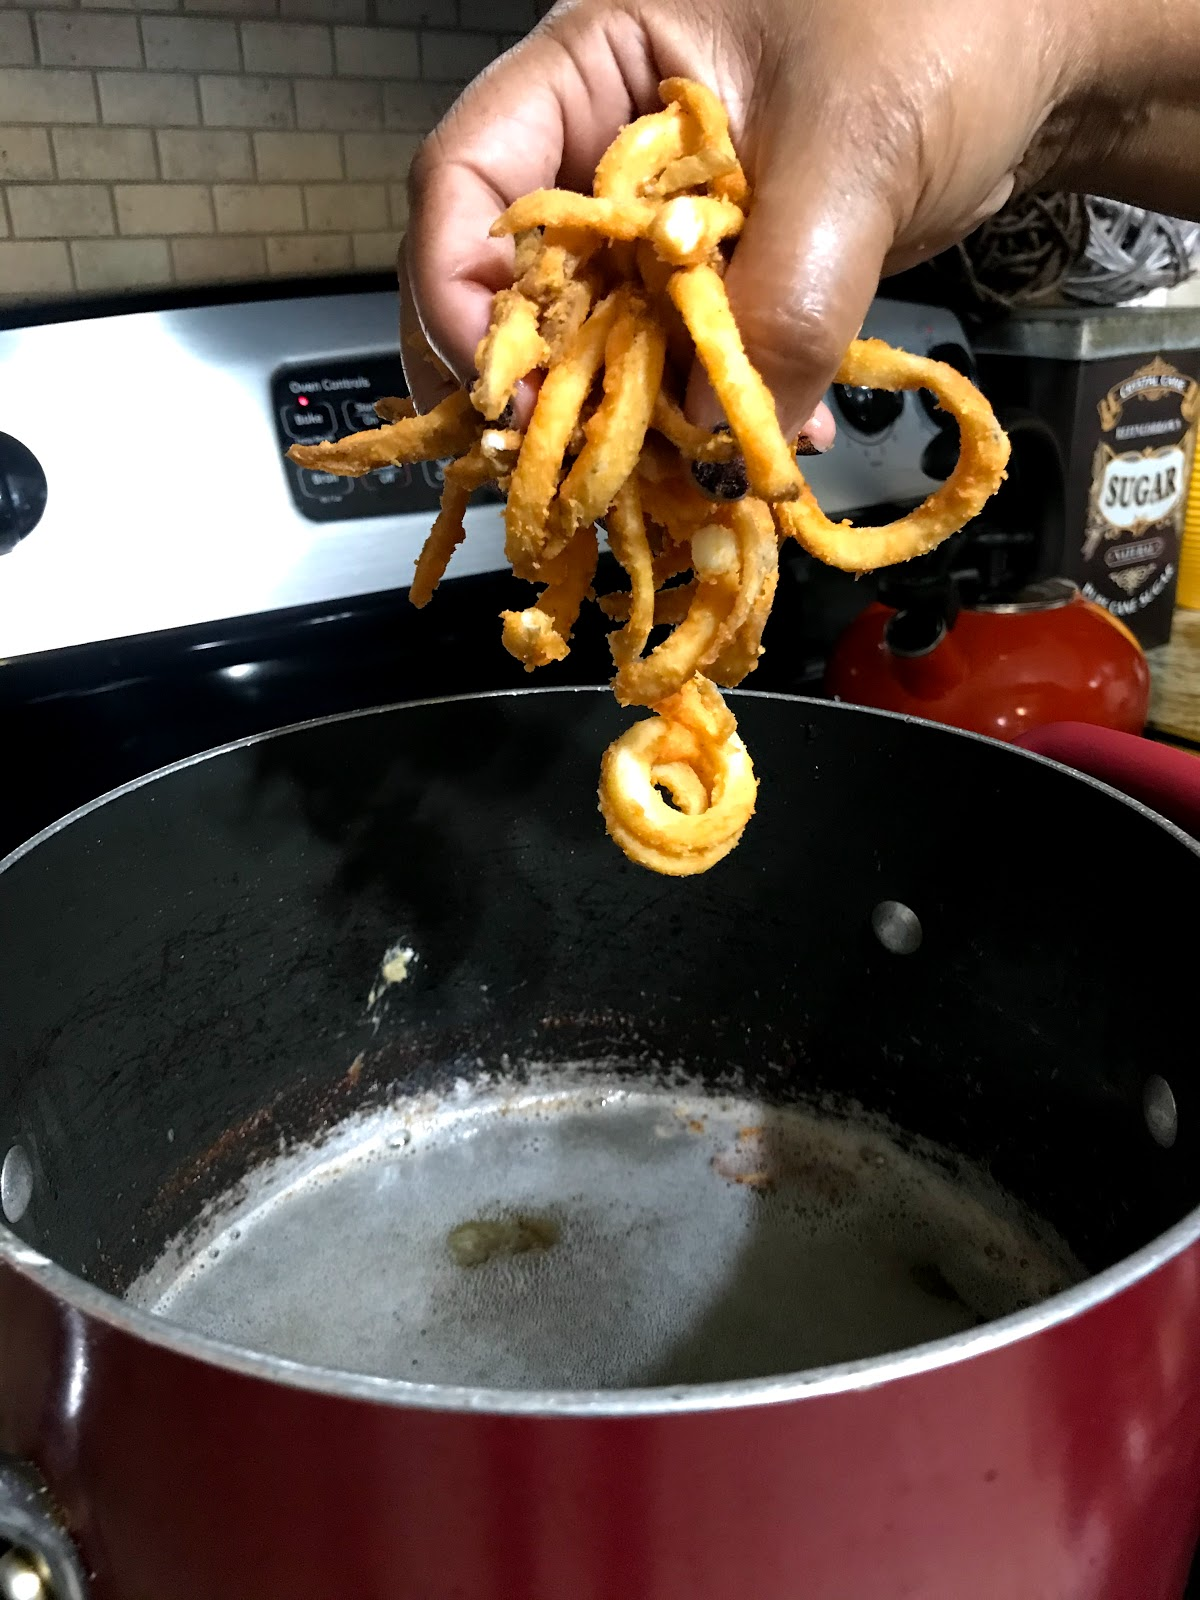 Image: Tangie is frying french fries to accompany her honey bun chicken sandwich